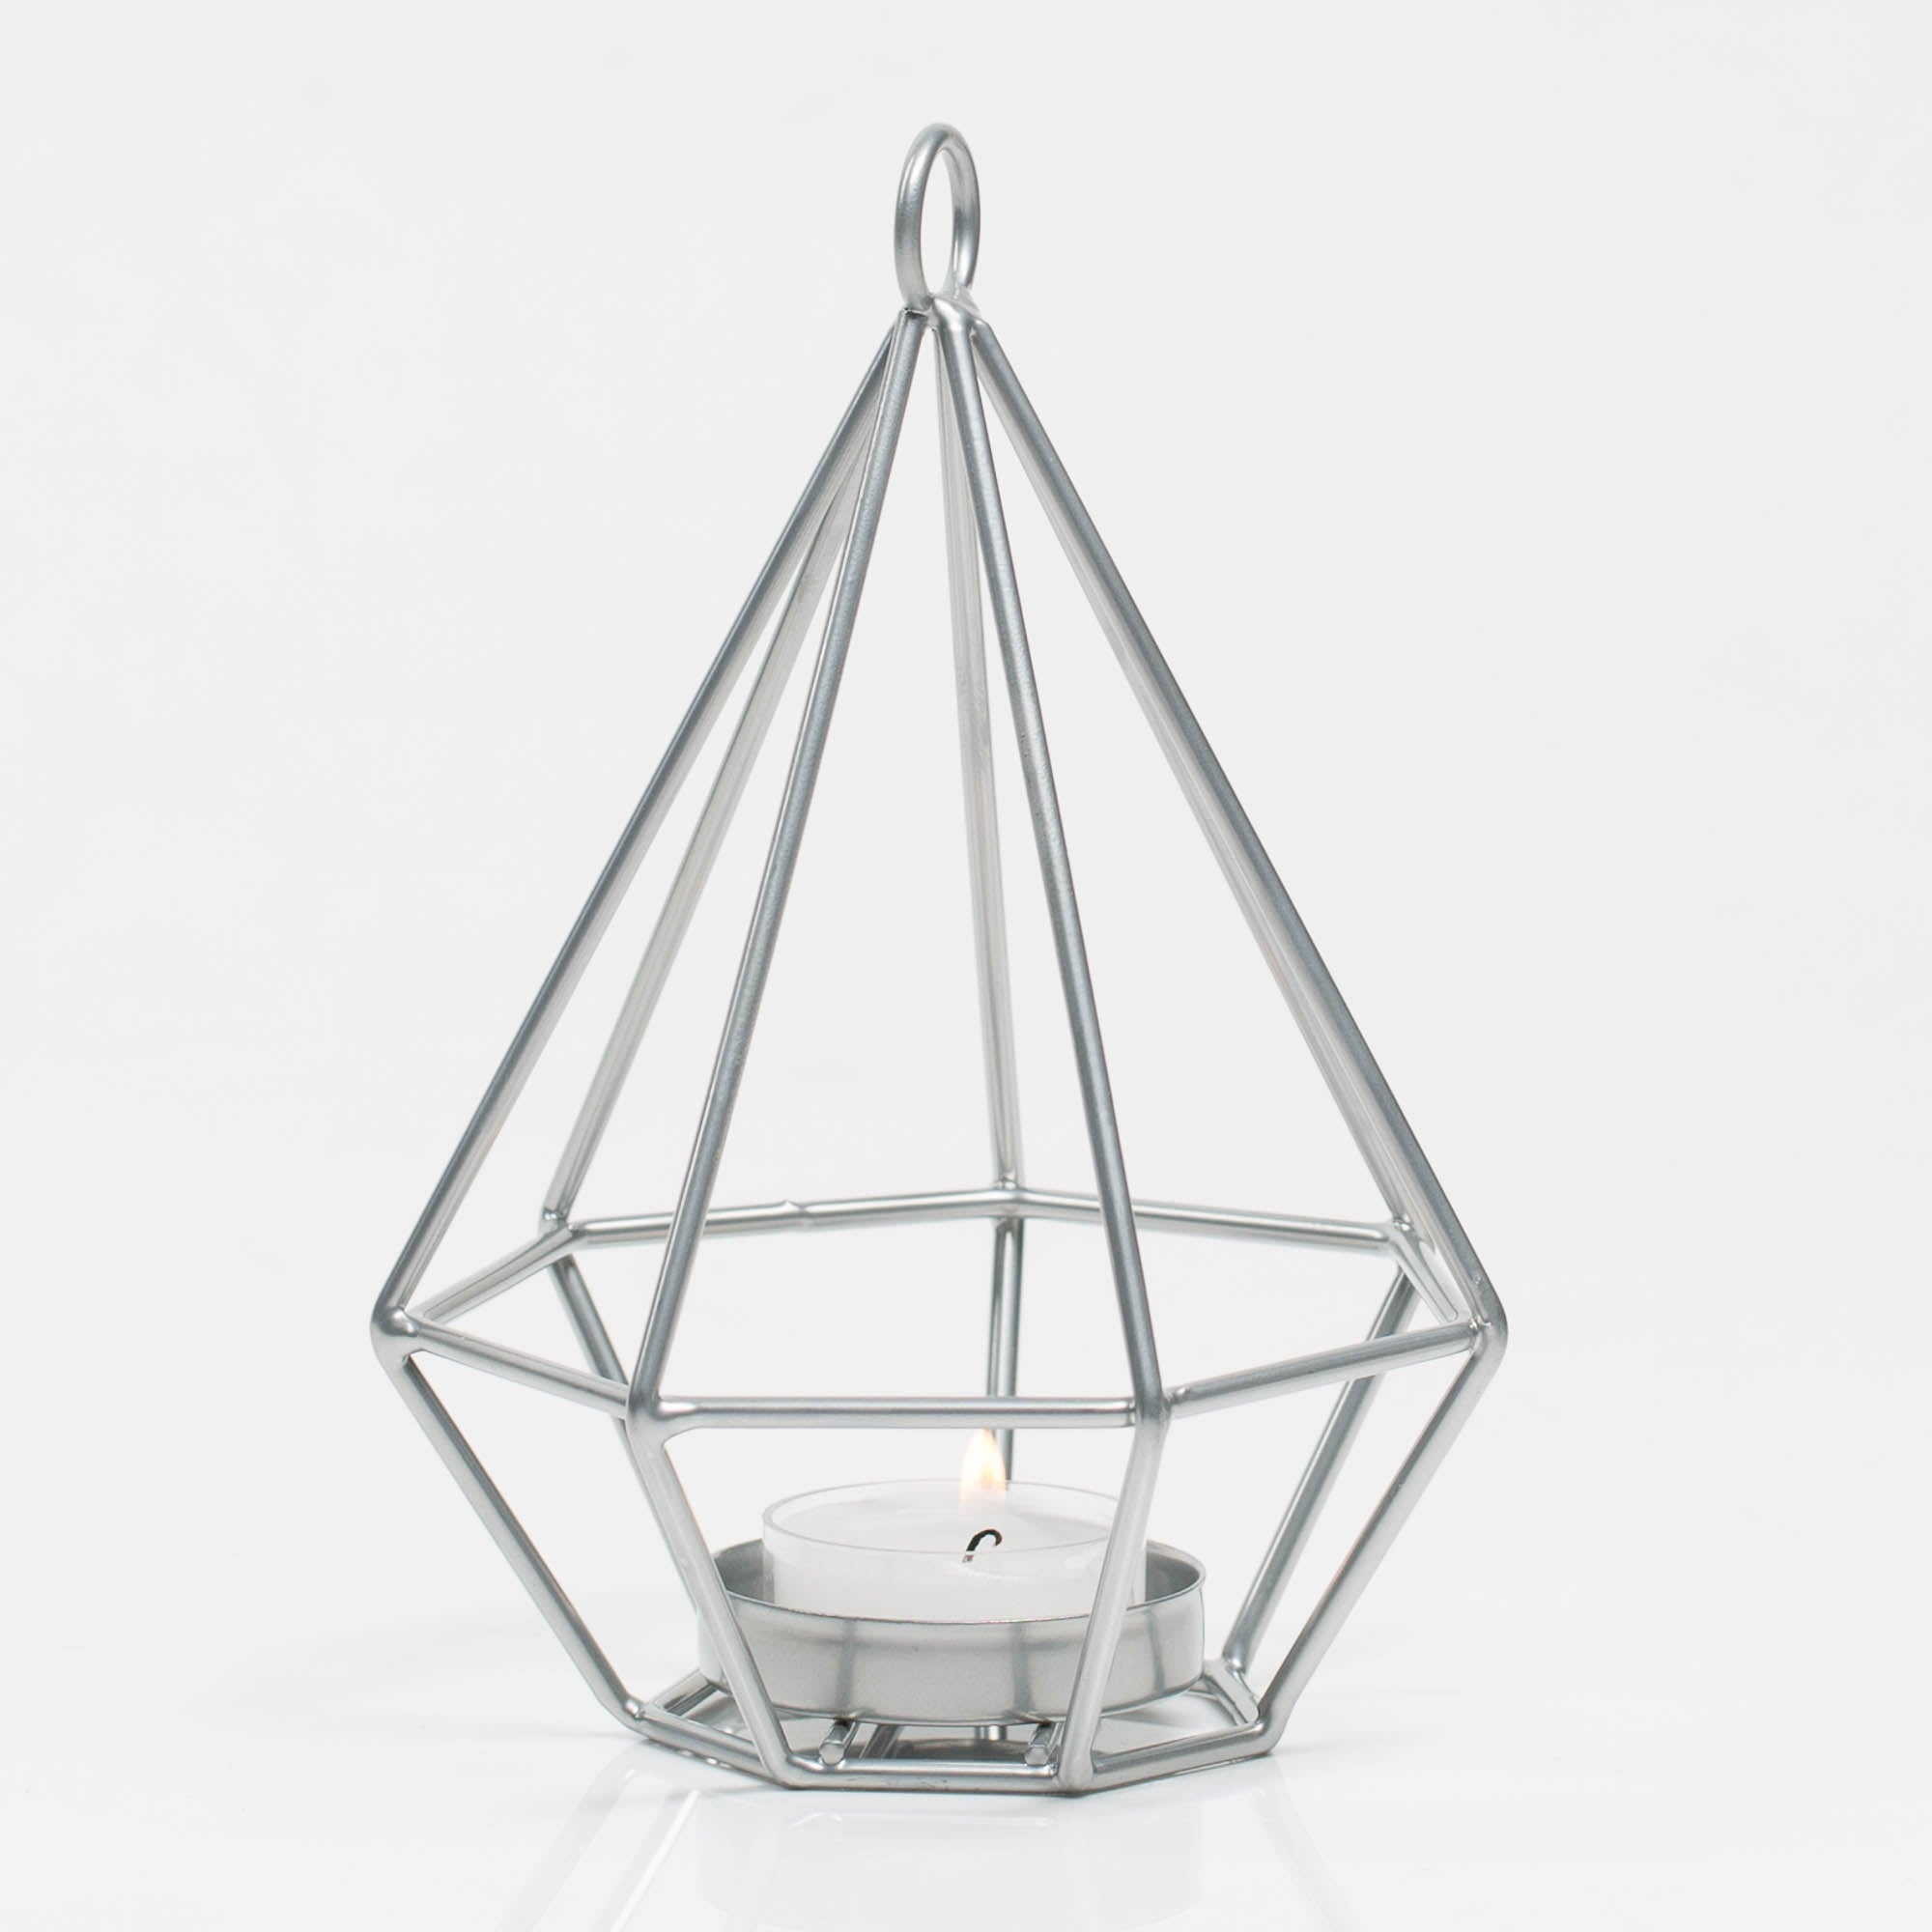 Richland Geometric Tealight Candle Holders - Silver Set of 12